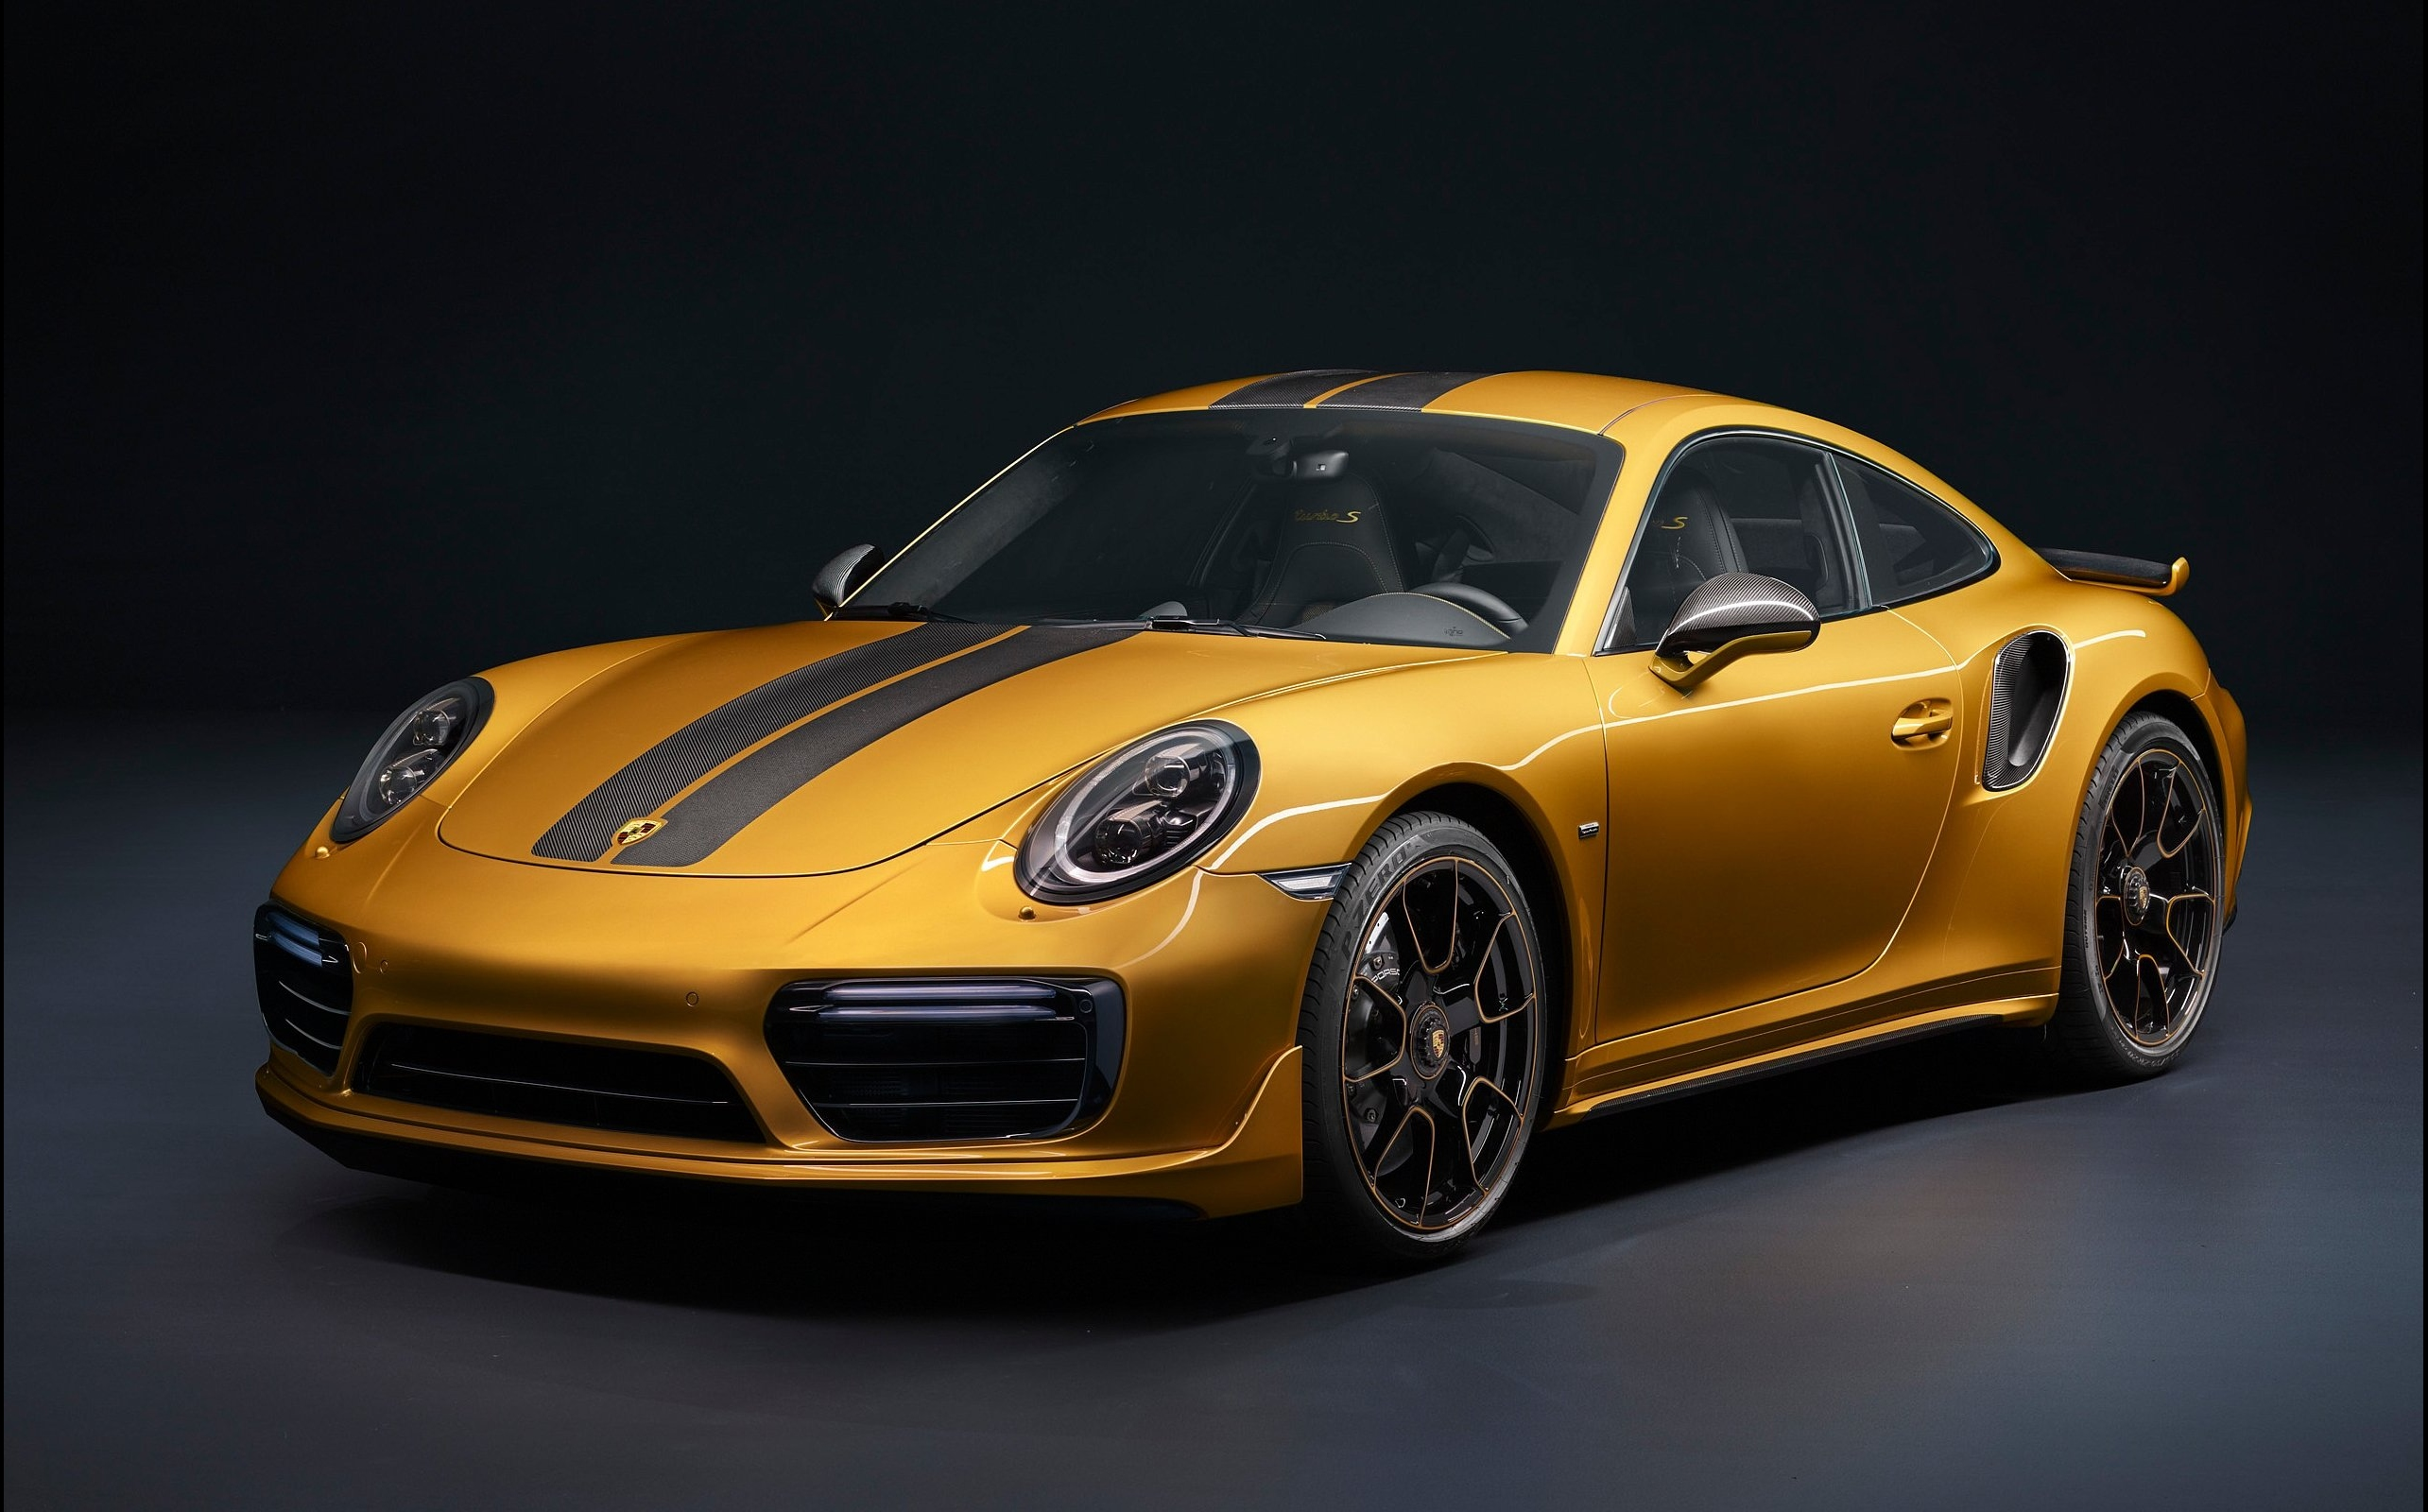 96 Porsche 911 Turbo HD Wallpapers Background Images   Wallpaper 2569x1600